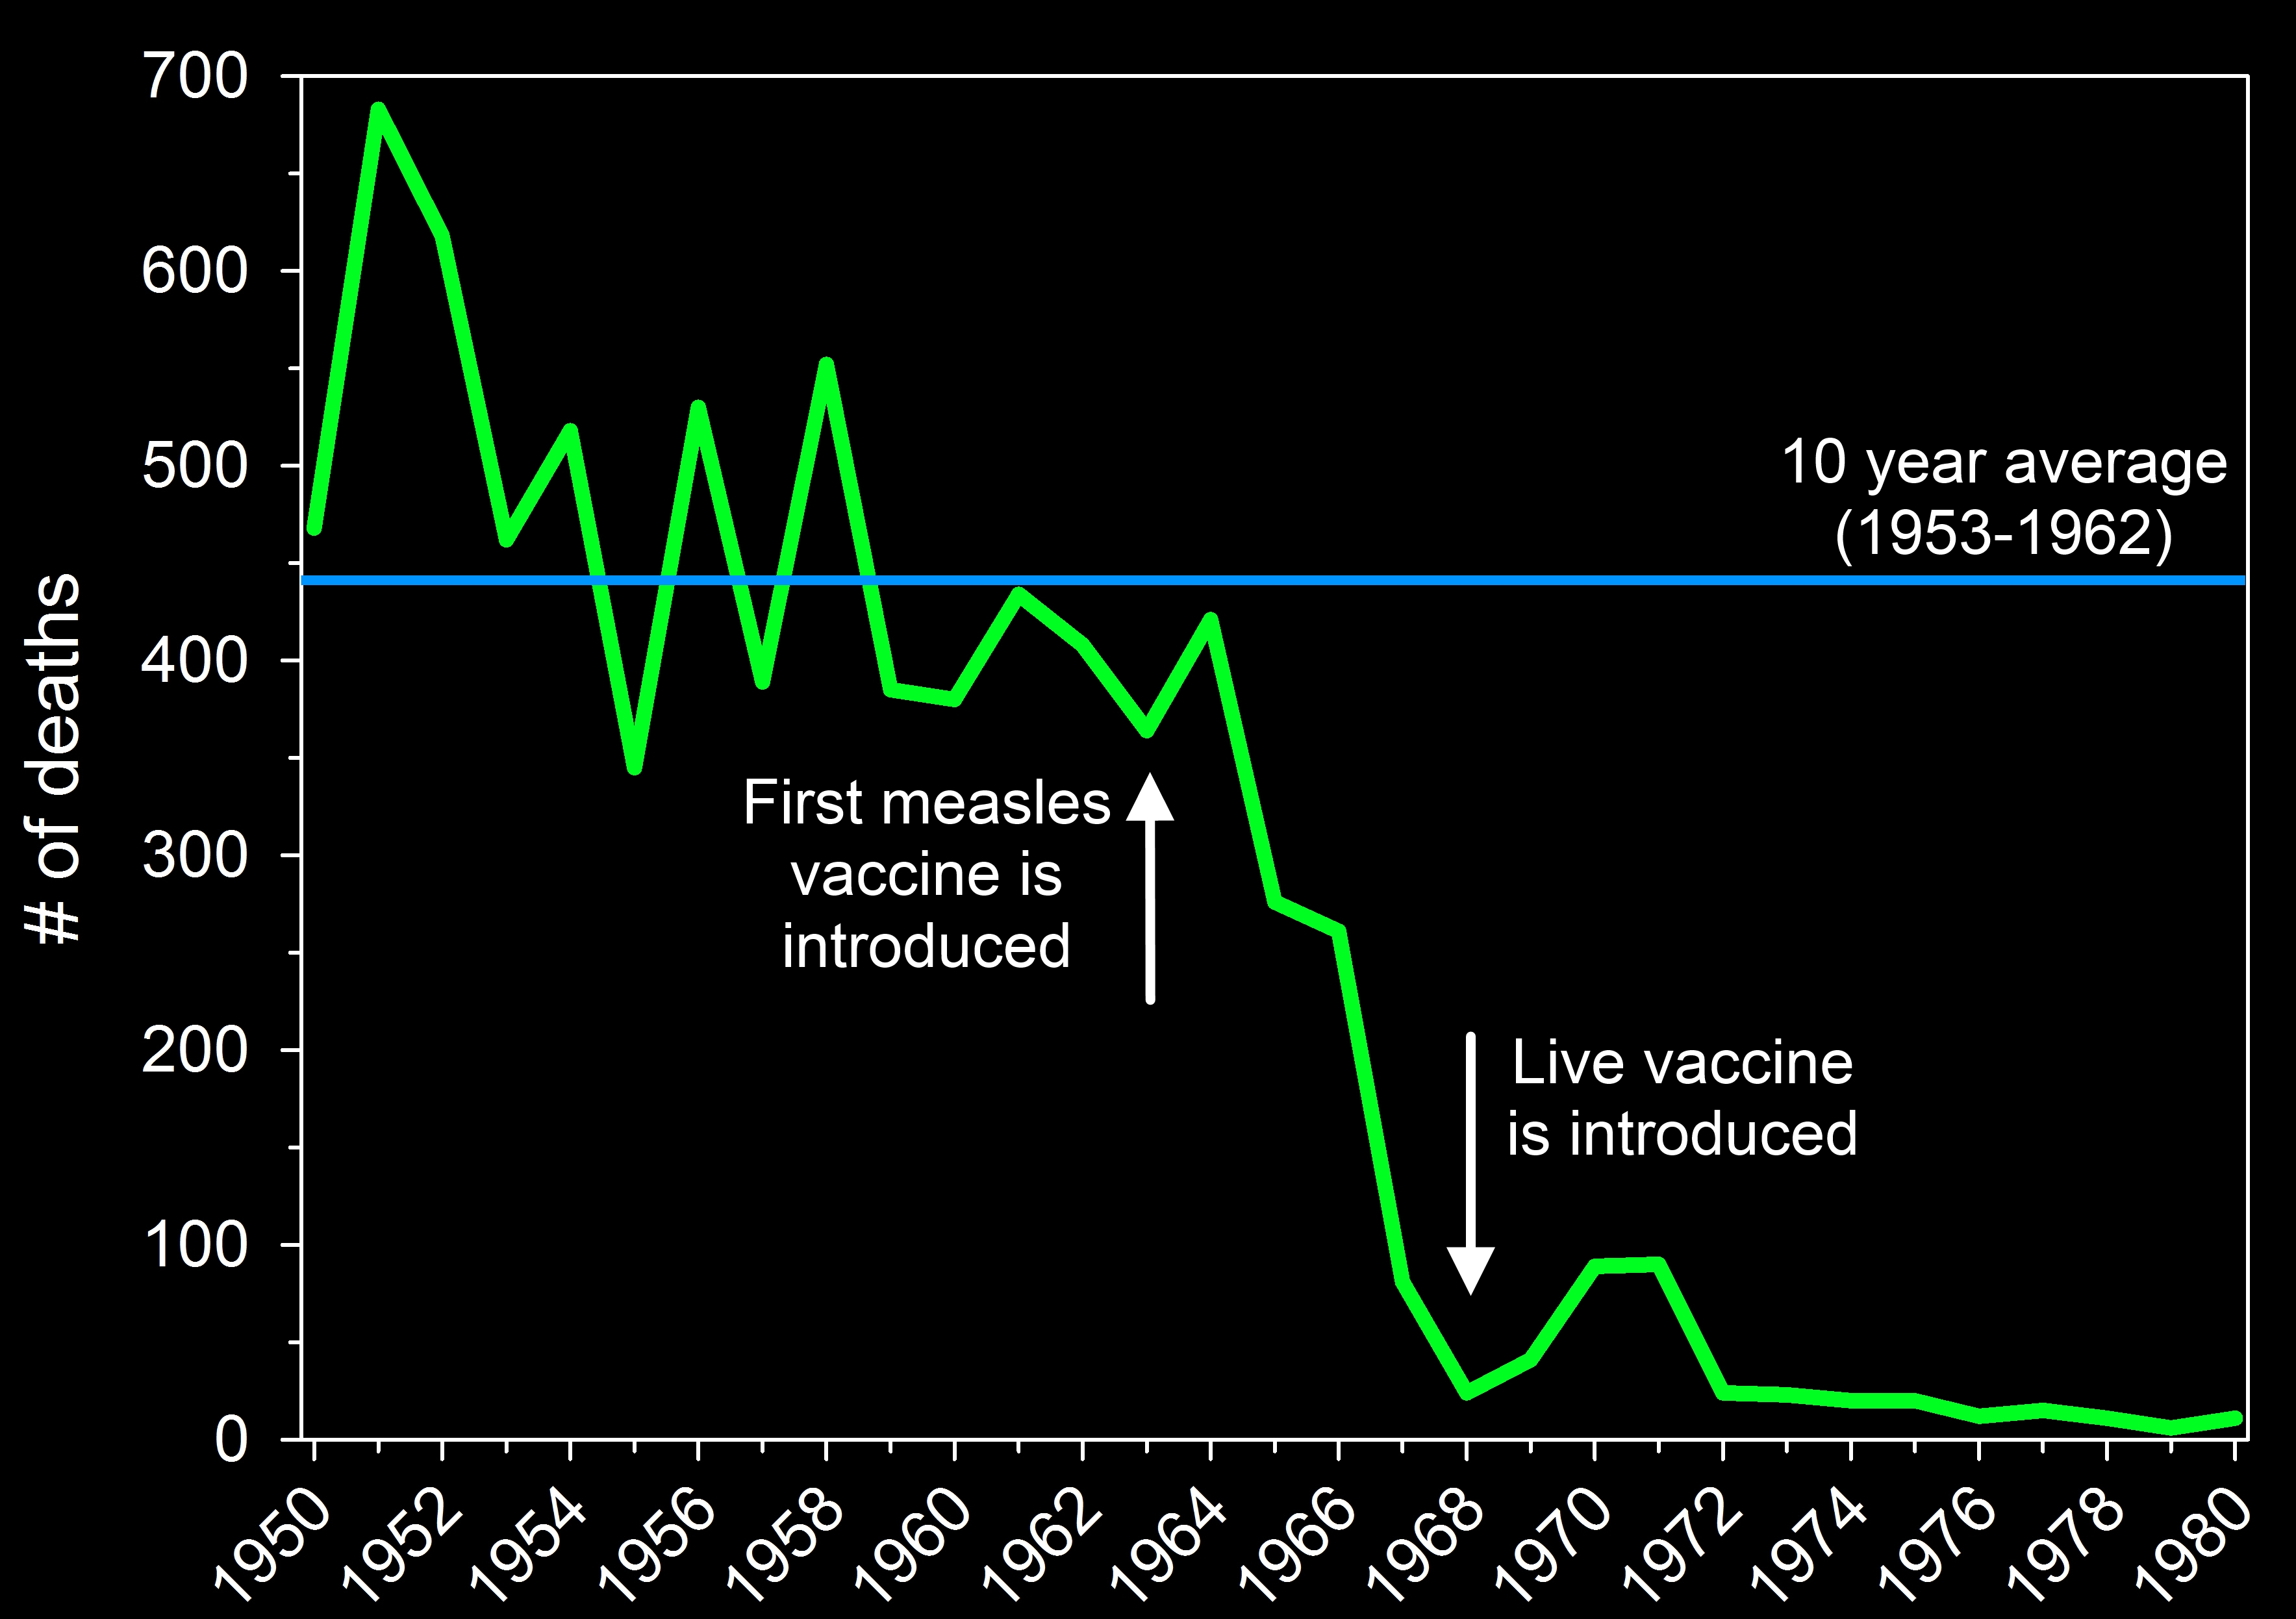 America Usa Measles Deaths Vaccine Before After Anual